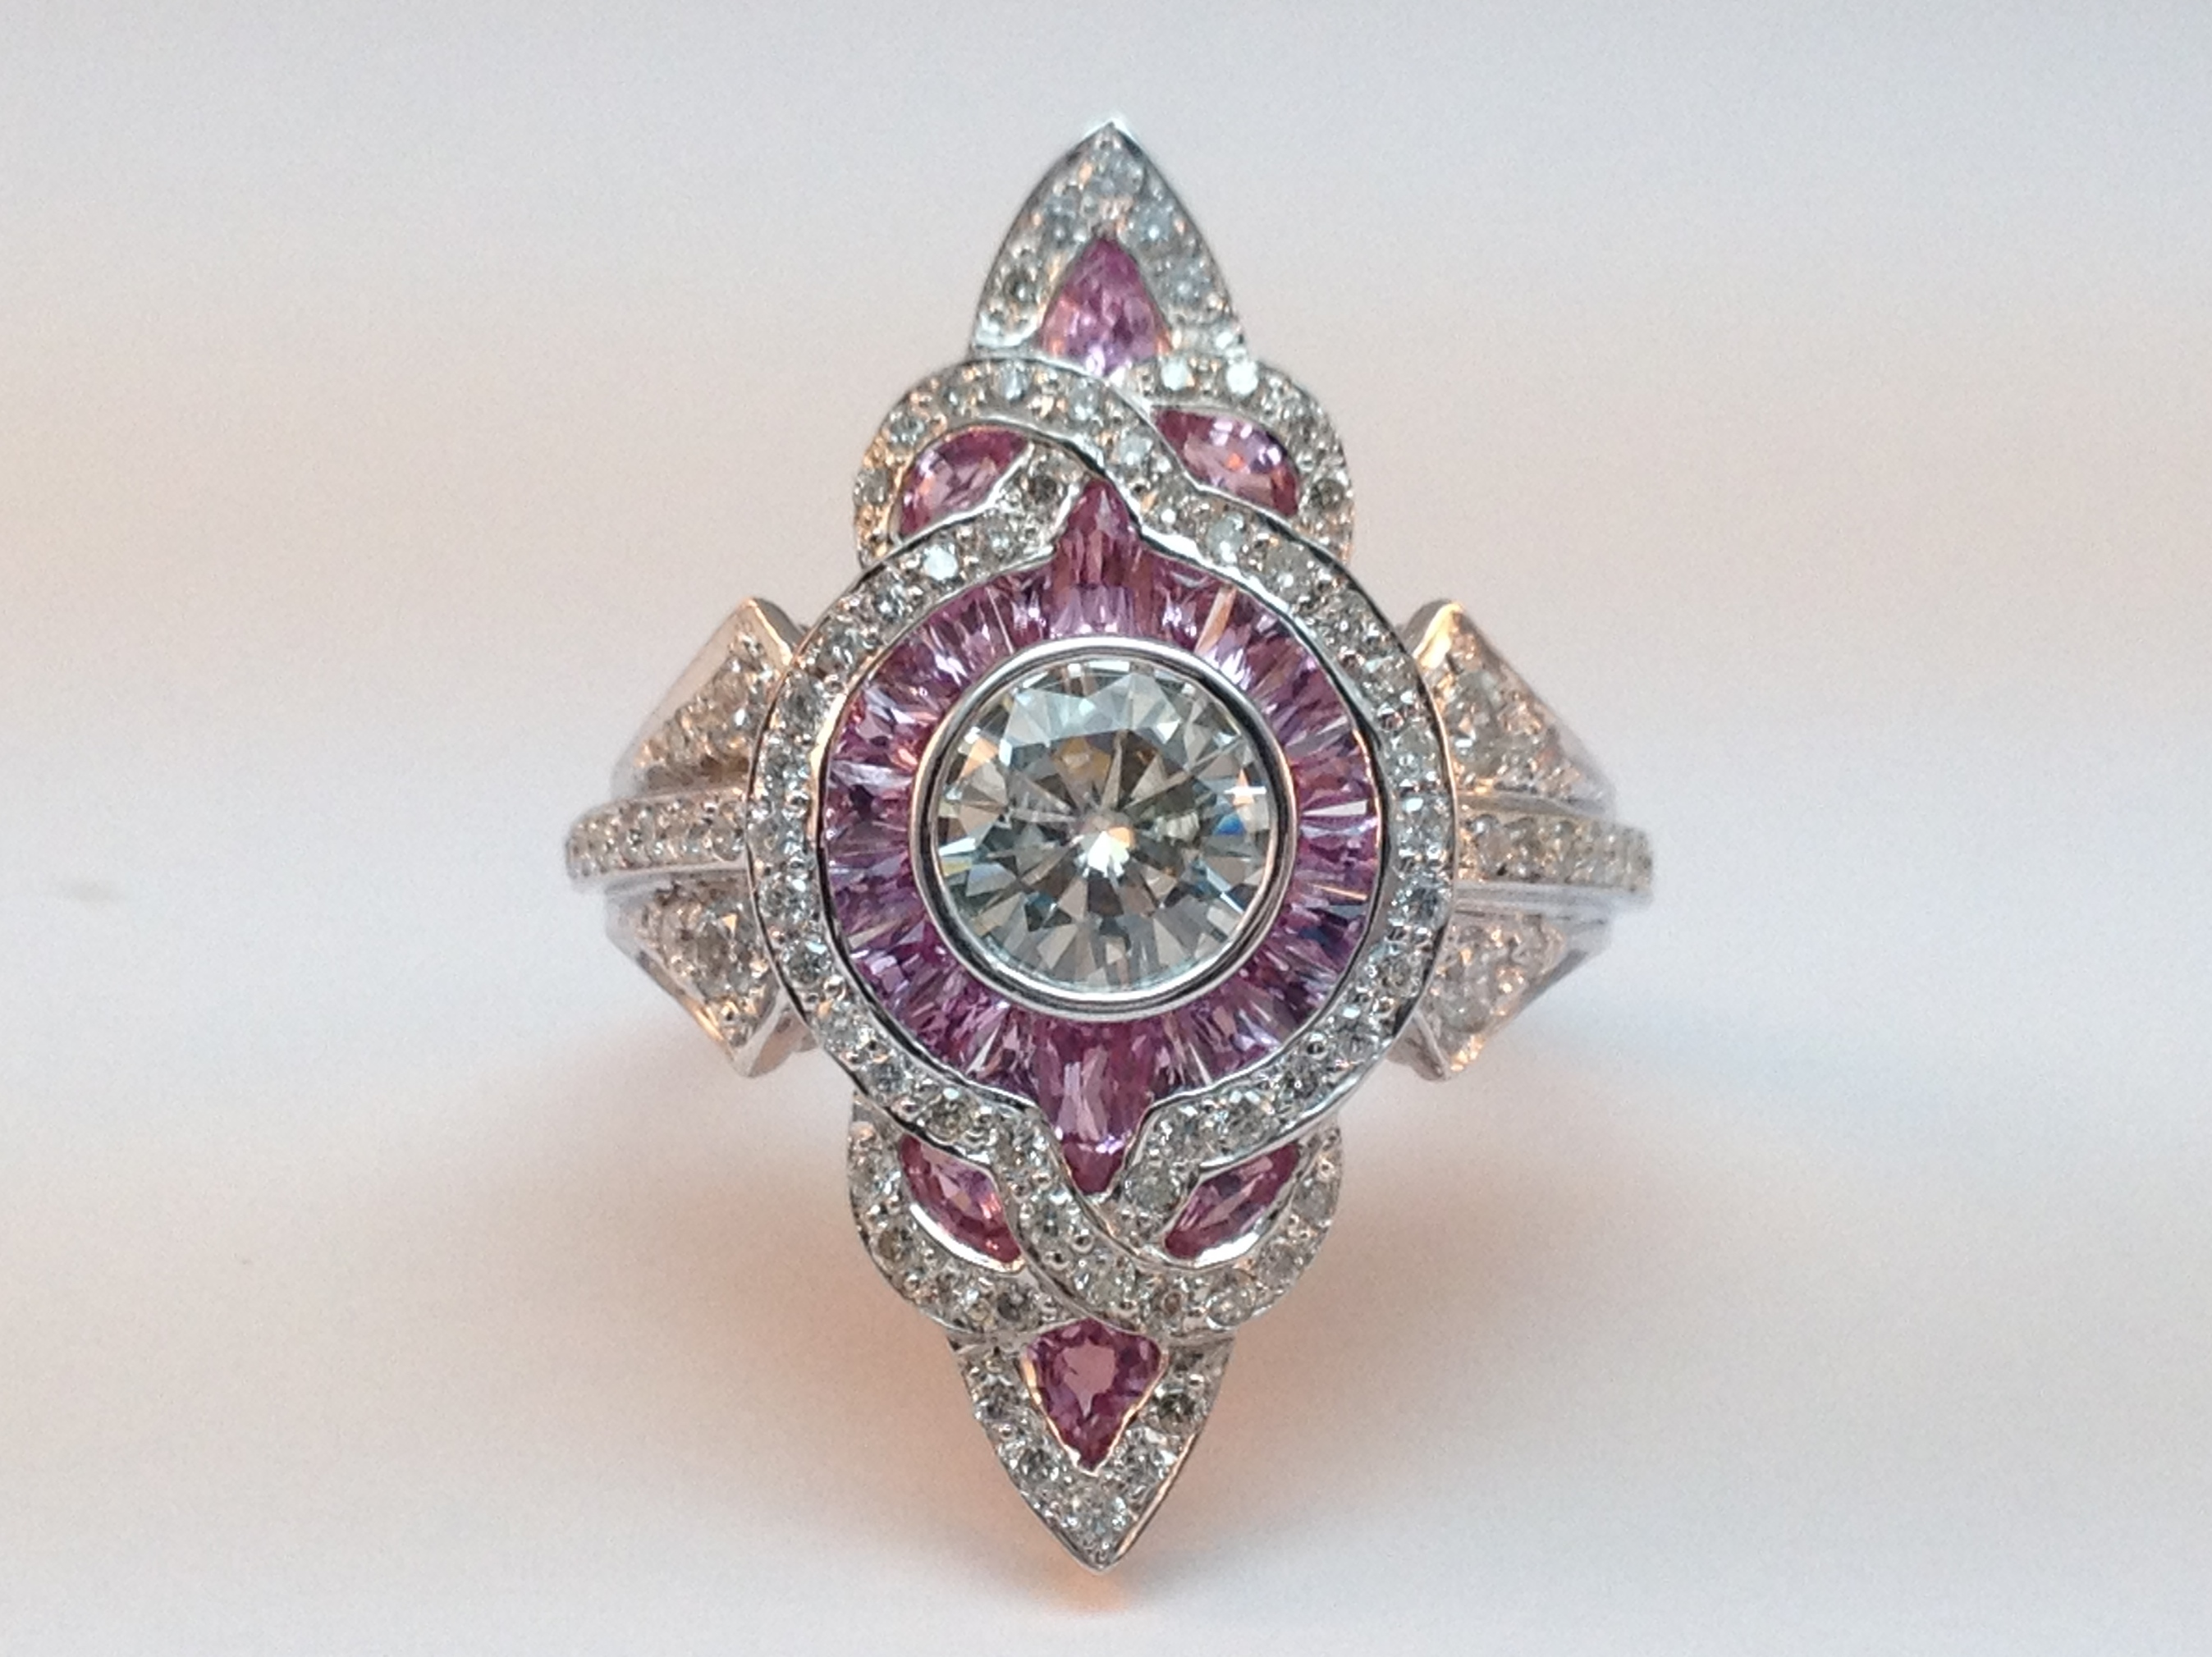 pink engagement argyle stylish rings mxdfzkj diamond promise wedding href